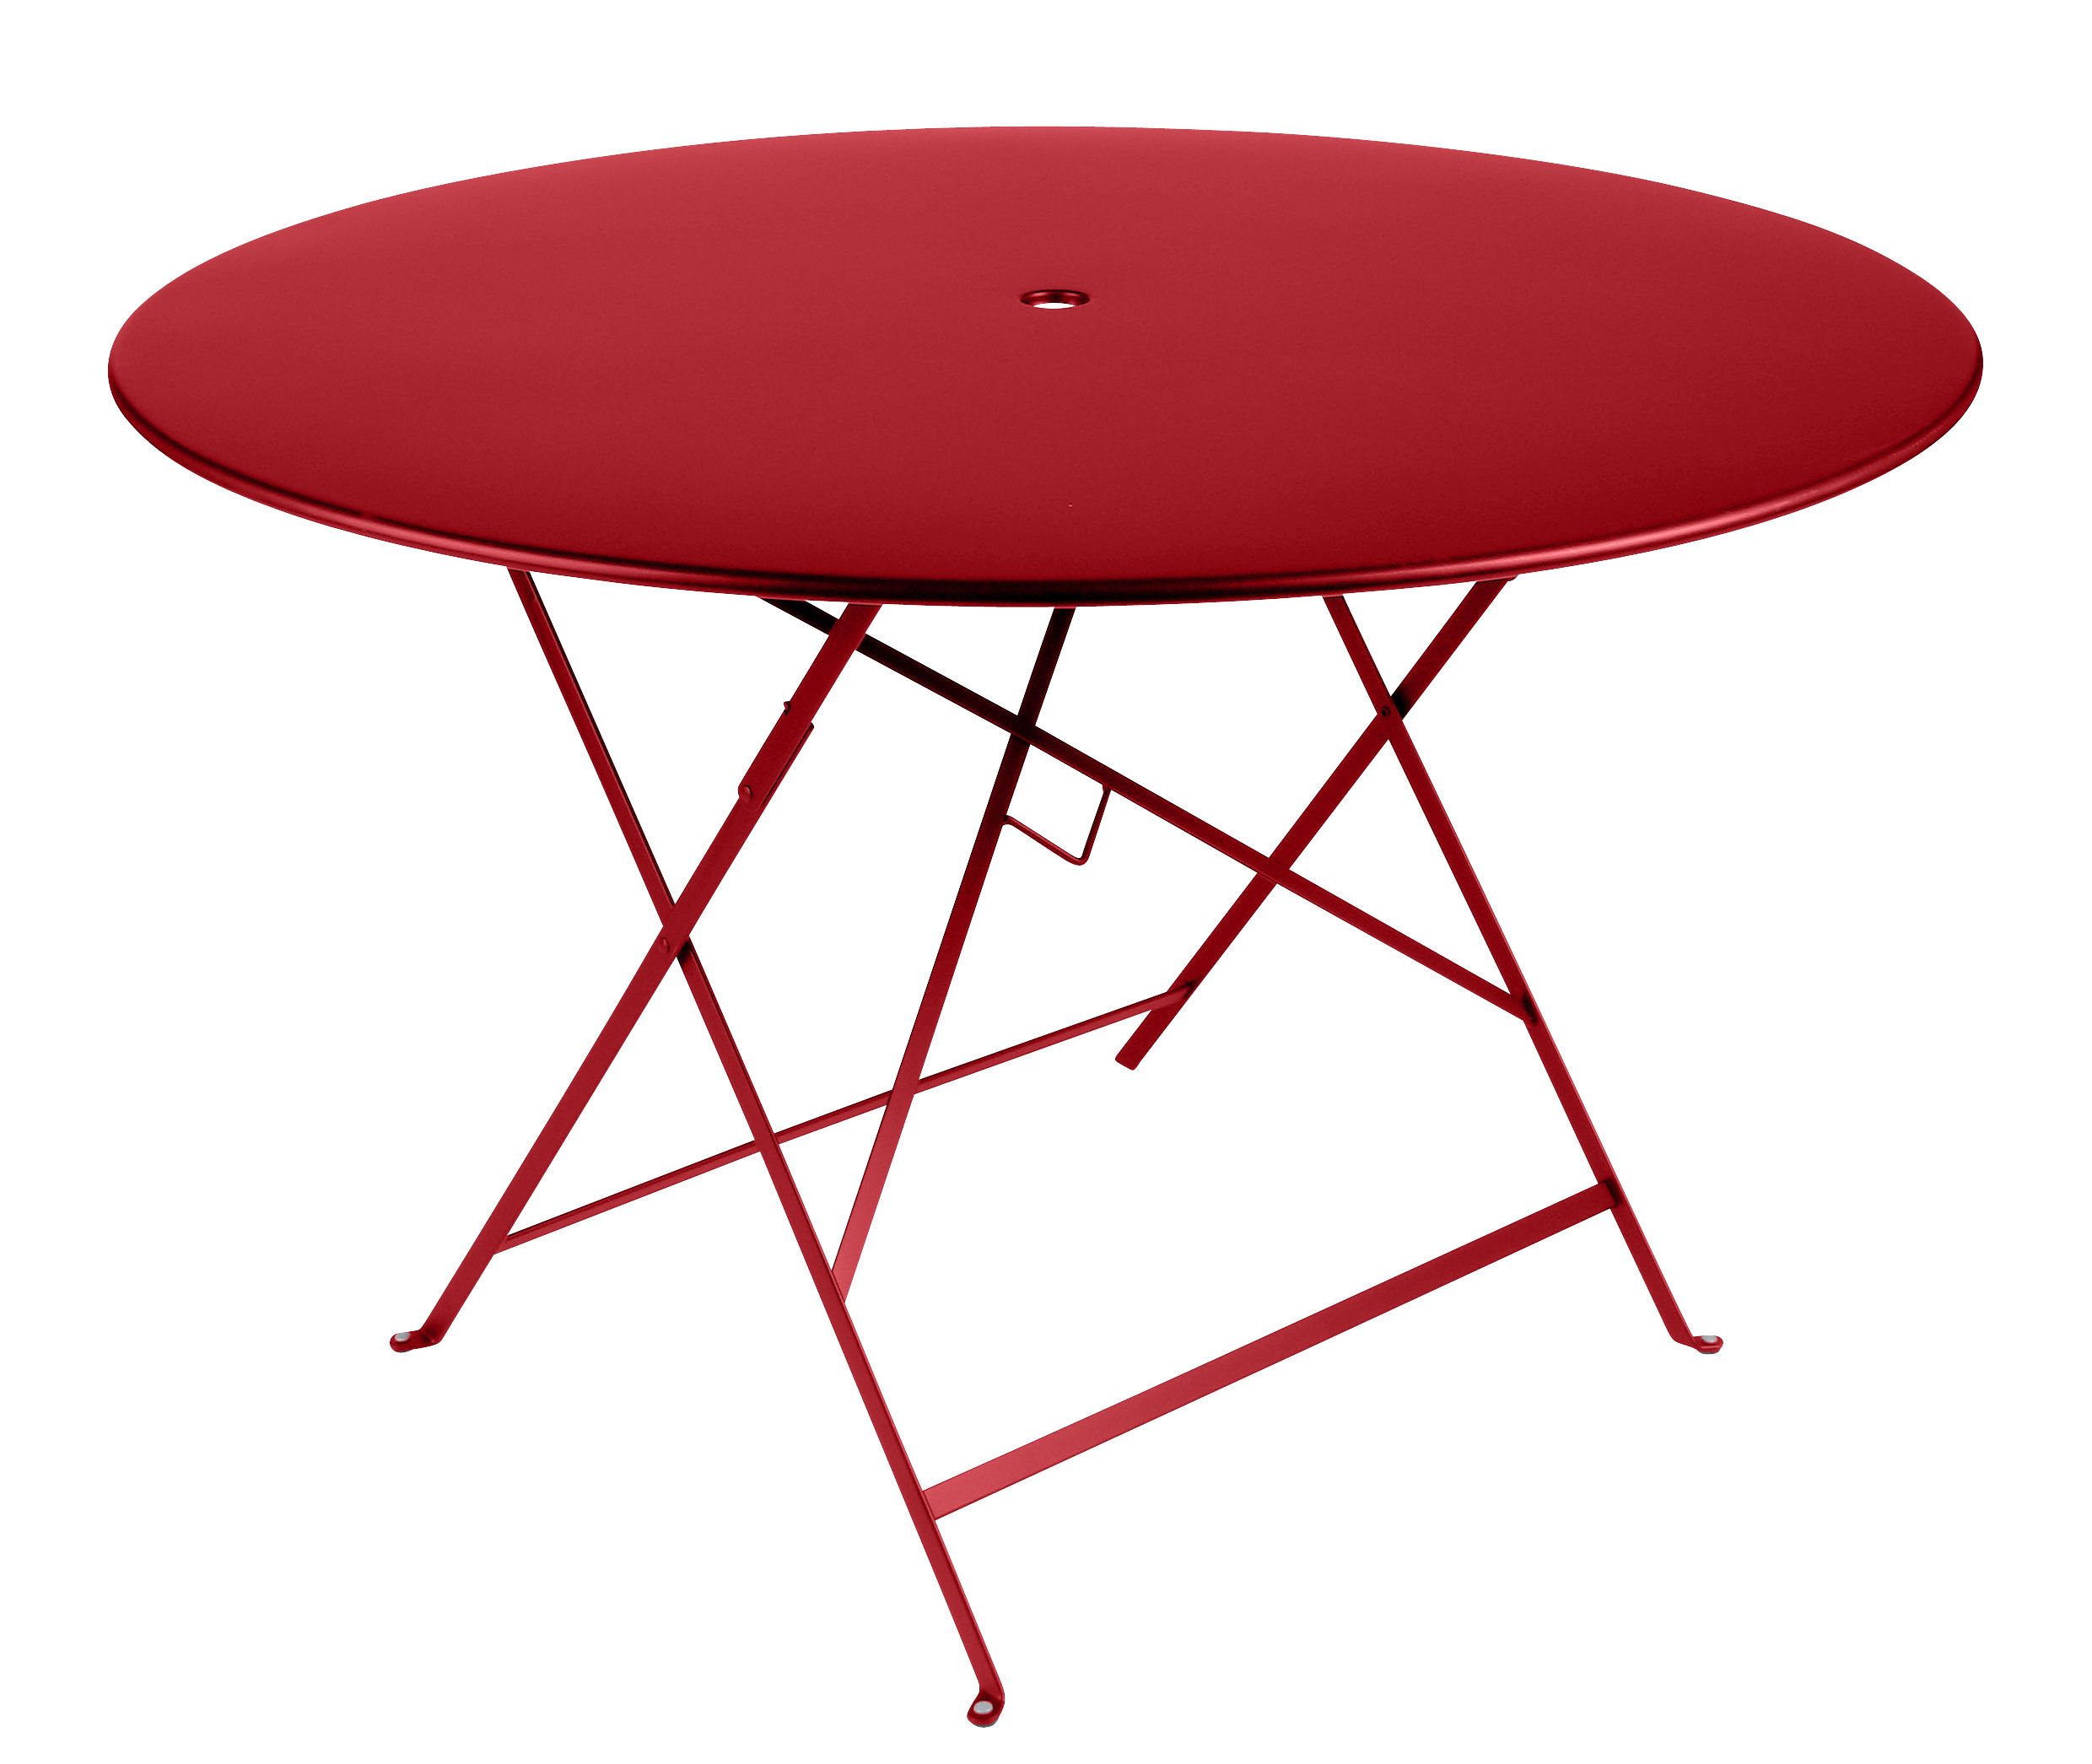 Outdoor - Garden Tables - Bistro Foldable table - Ø 117 cm - 6/8 people - Umbrella Hole by Fermob - Poppy - Painted steel